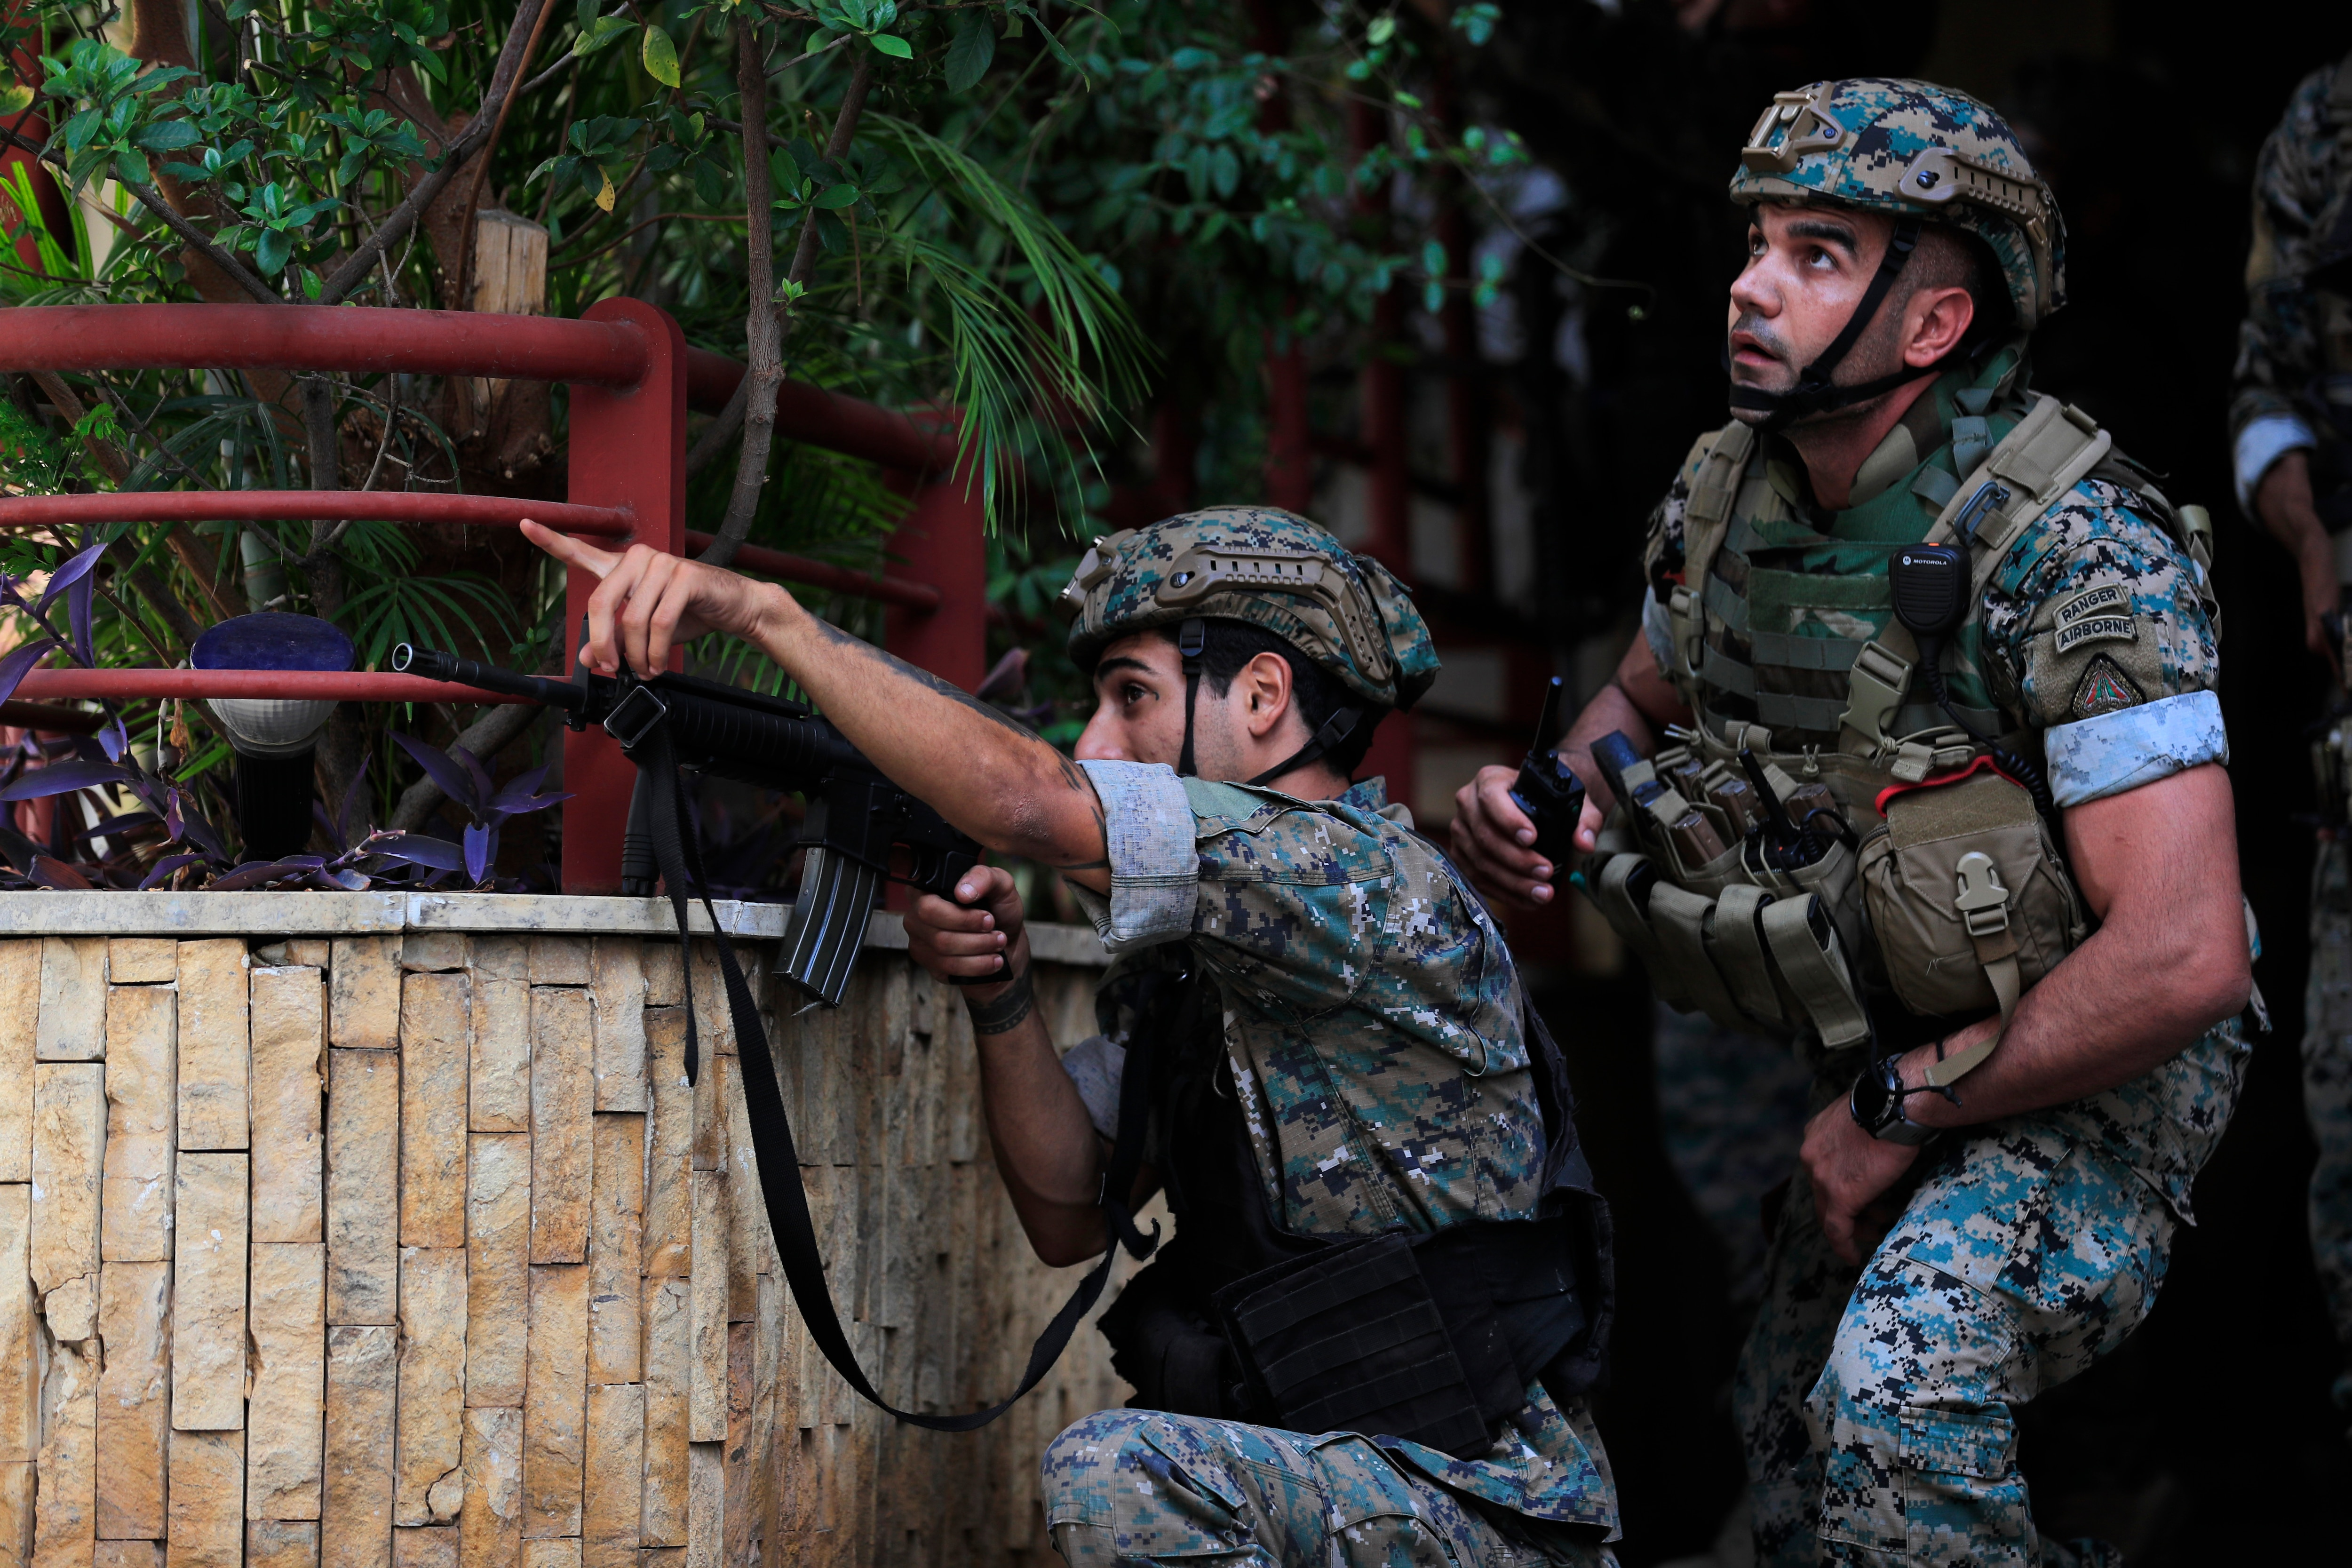 Lebanese security forces react to gunfire during a protest in Beirut